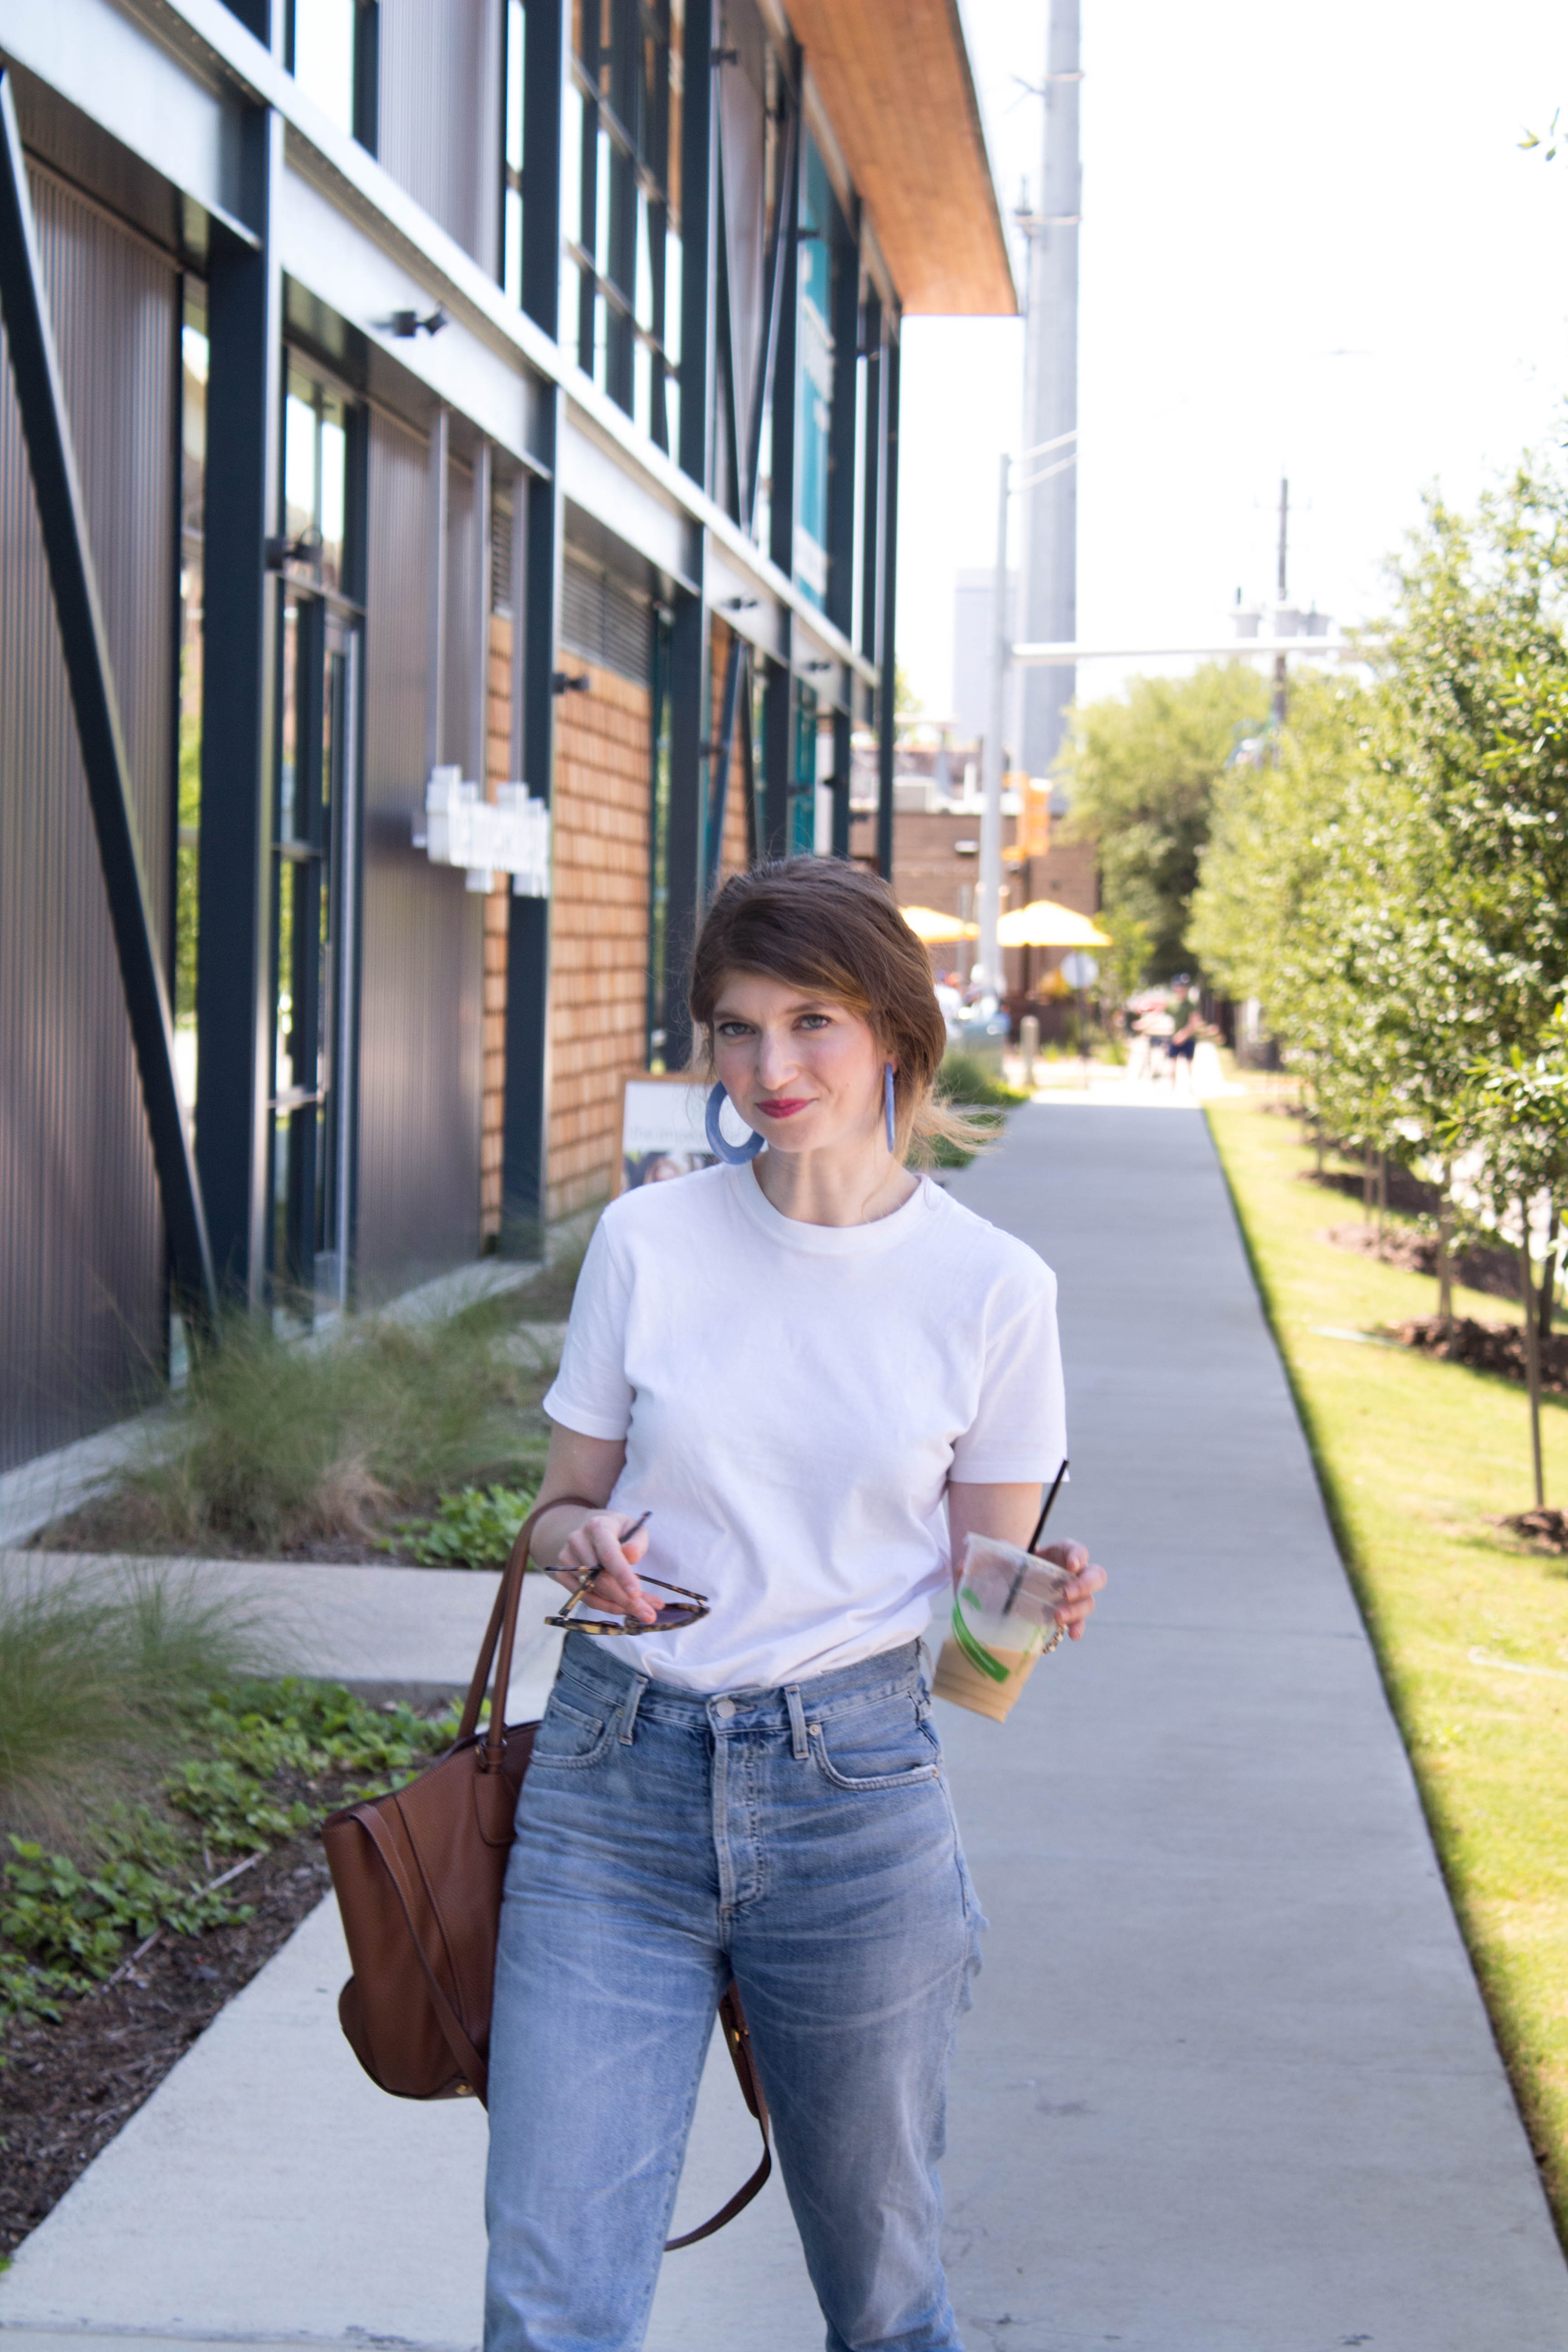 citizen of humanity jeans, Hanes tee outfit, cult Gaia earrings, spring basics